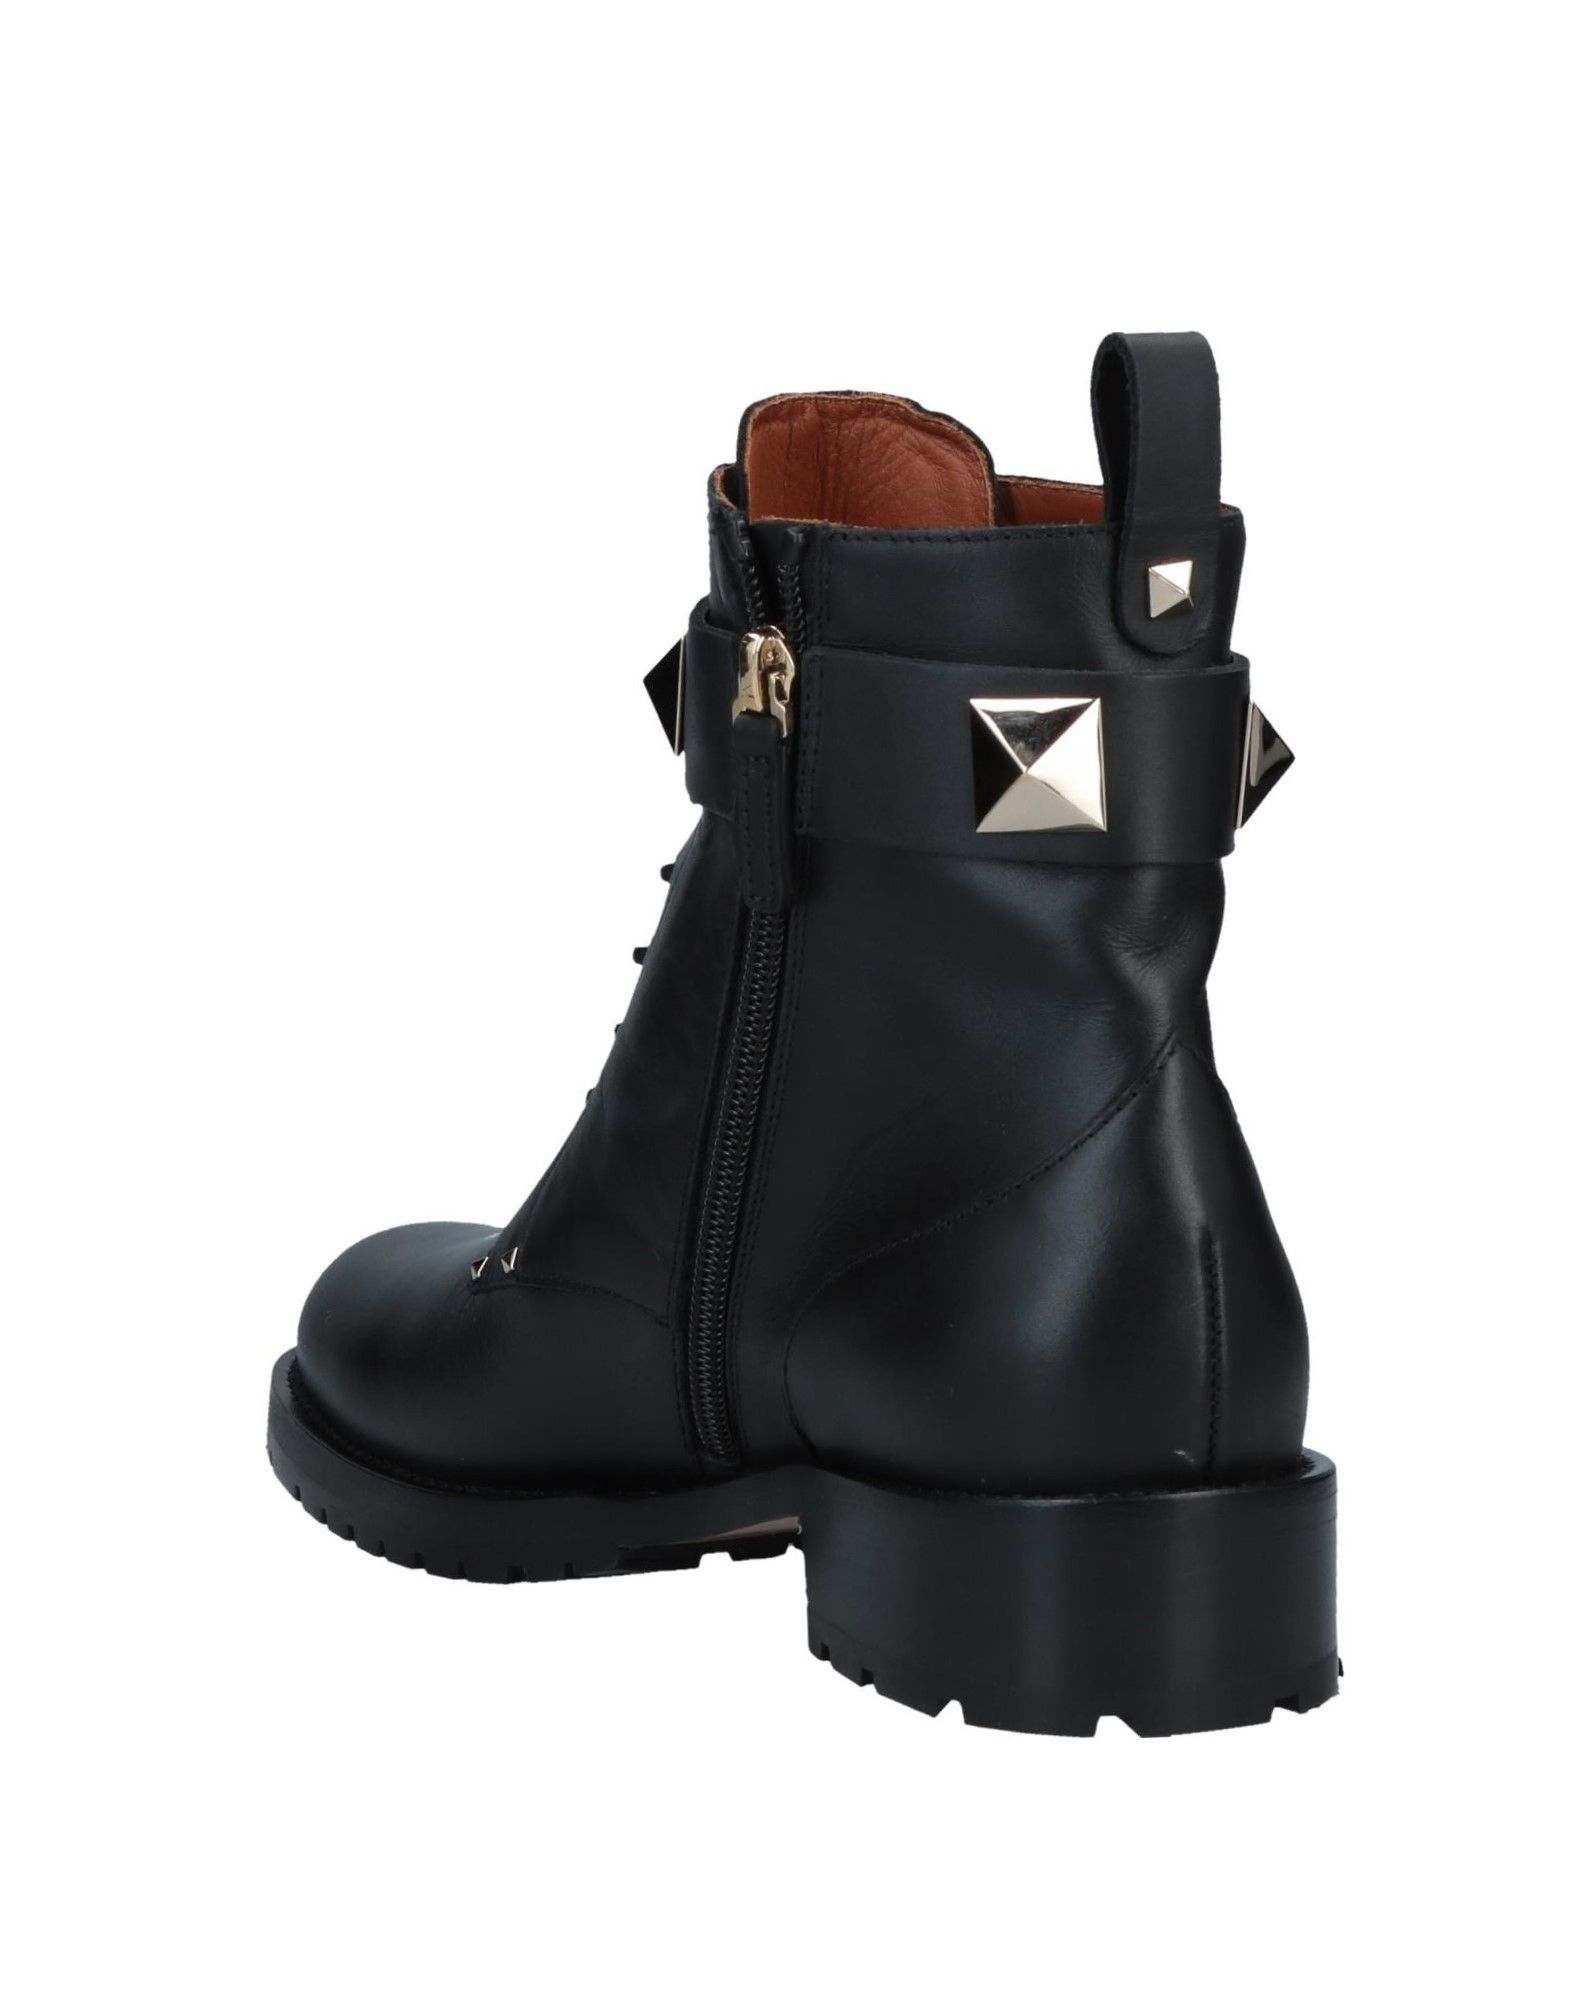 Valentino Garavani Black Leather Ankle Boots